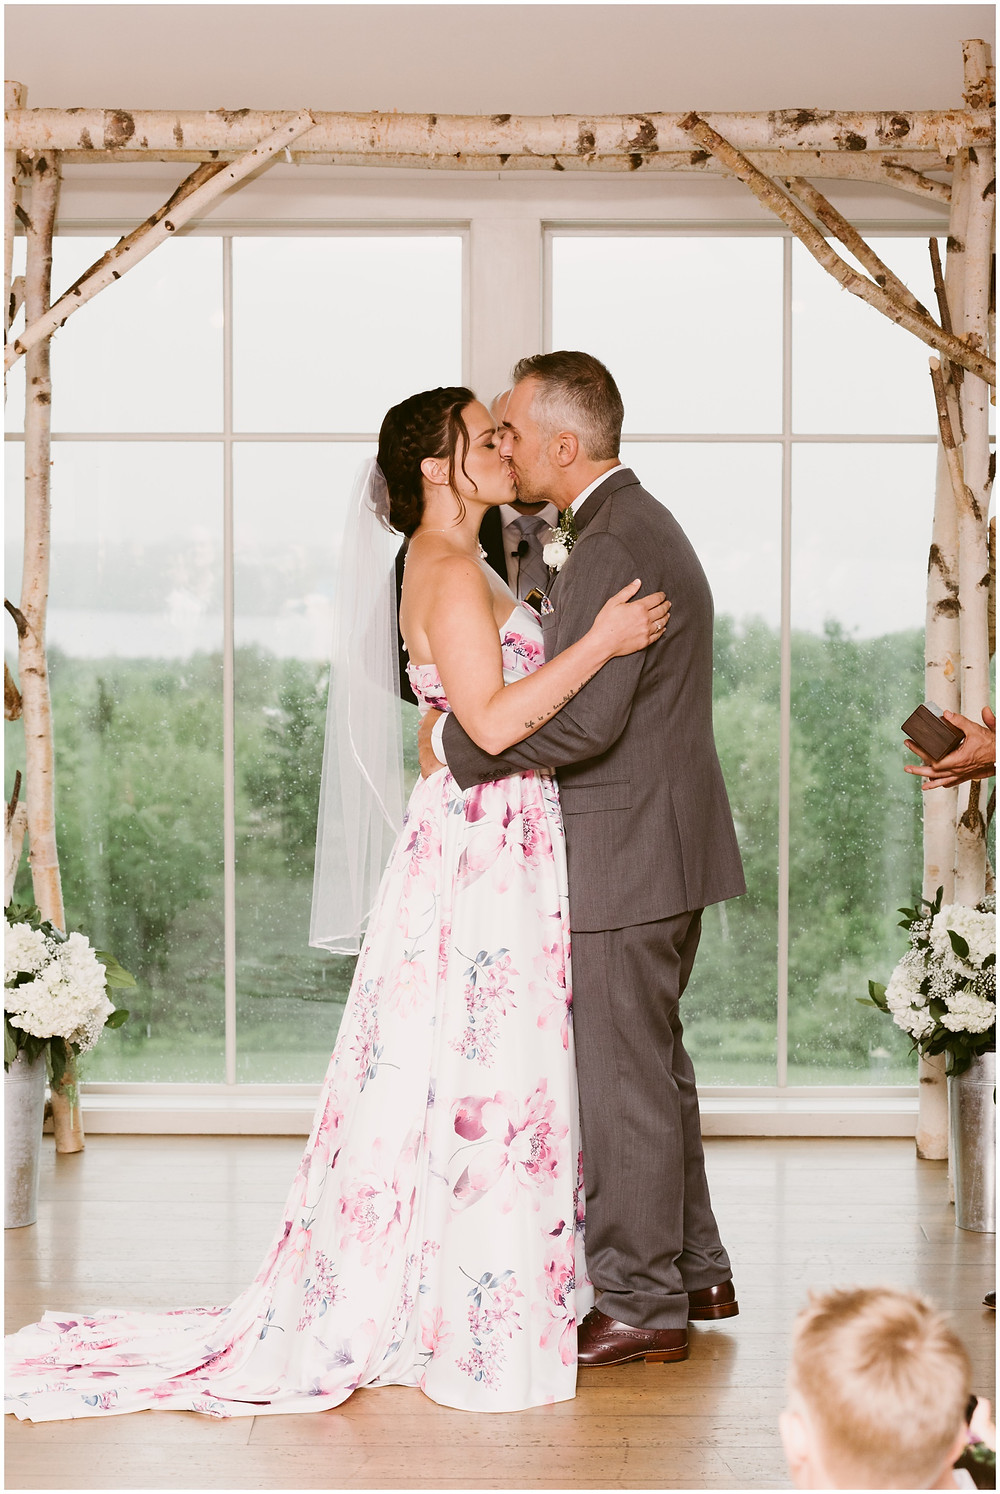 Rainy wedding at the Mountain Top Inn and Resort